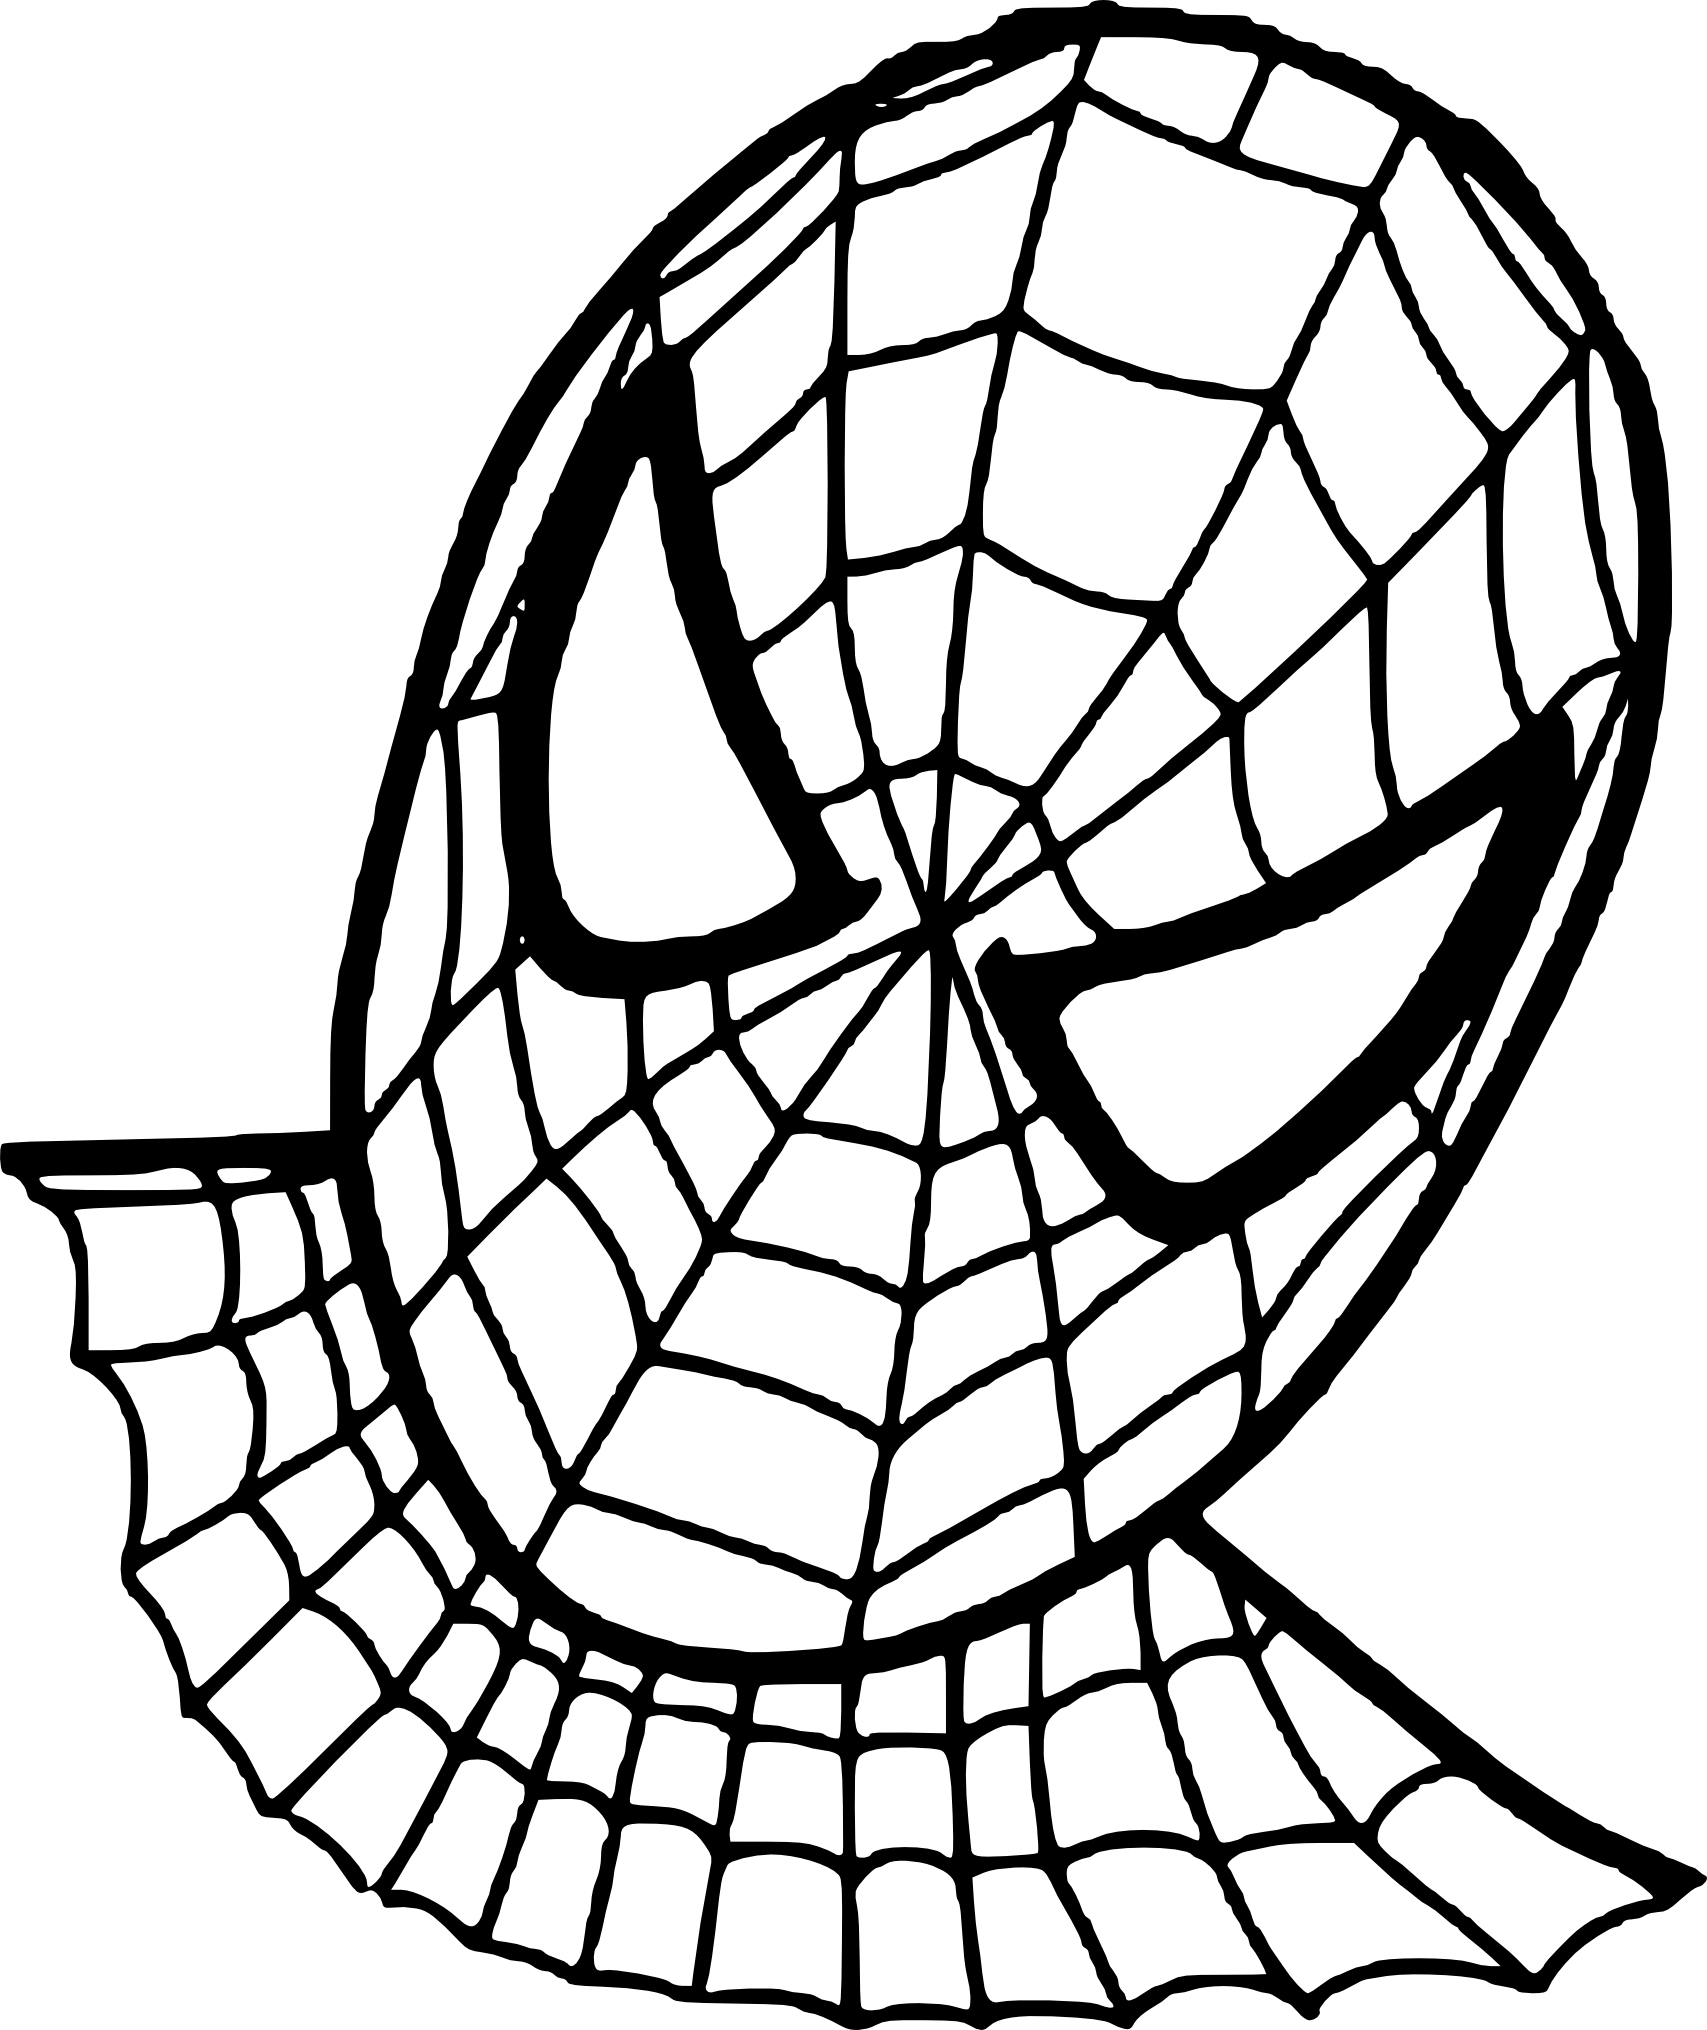 visage spiderman